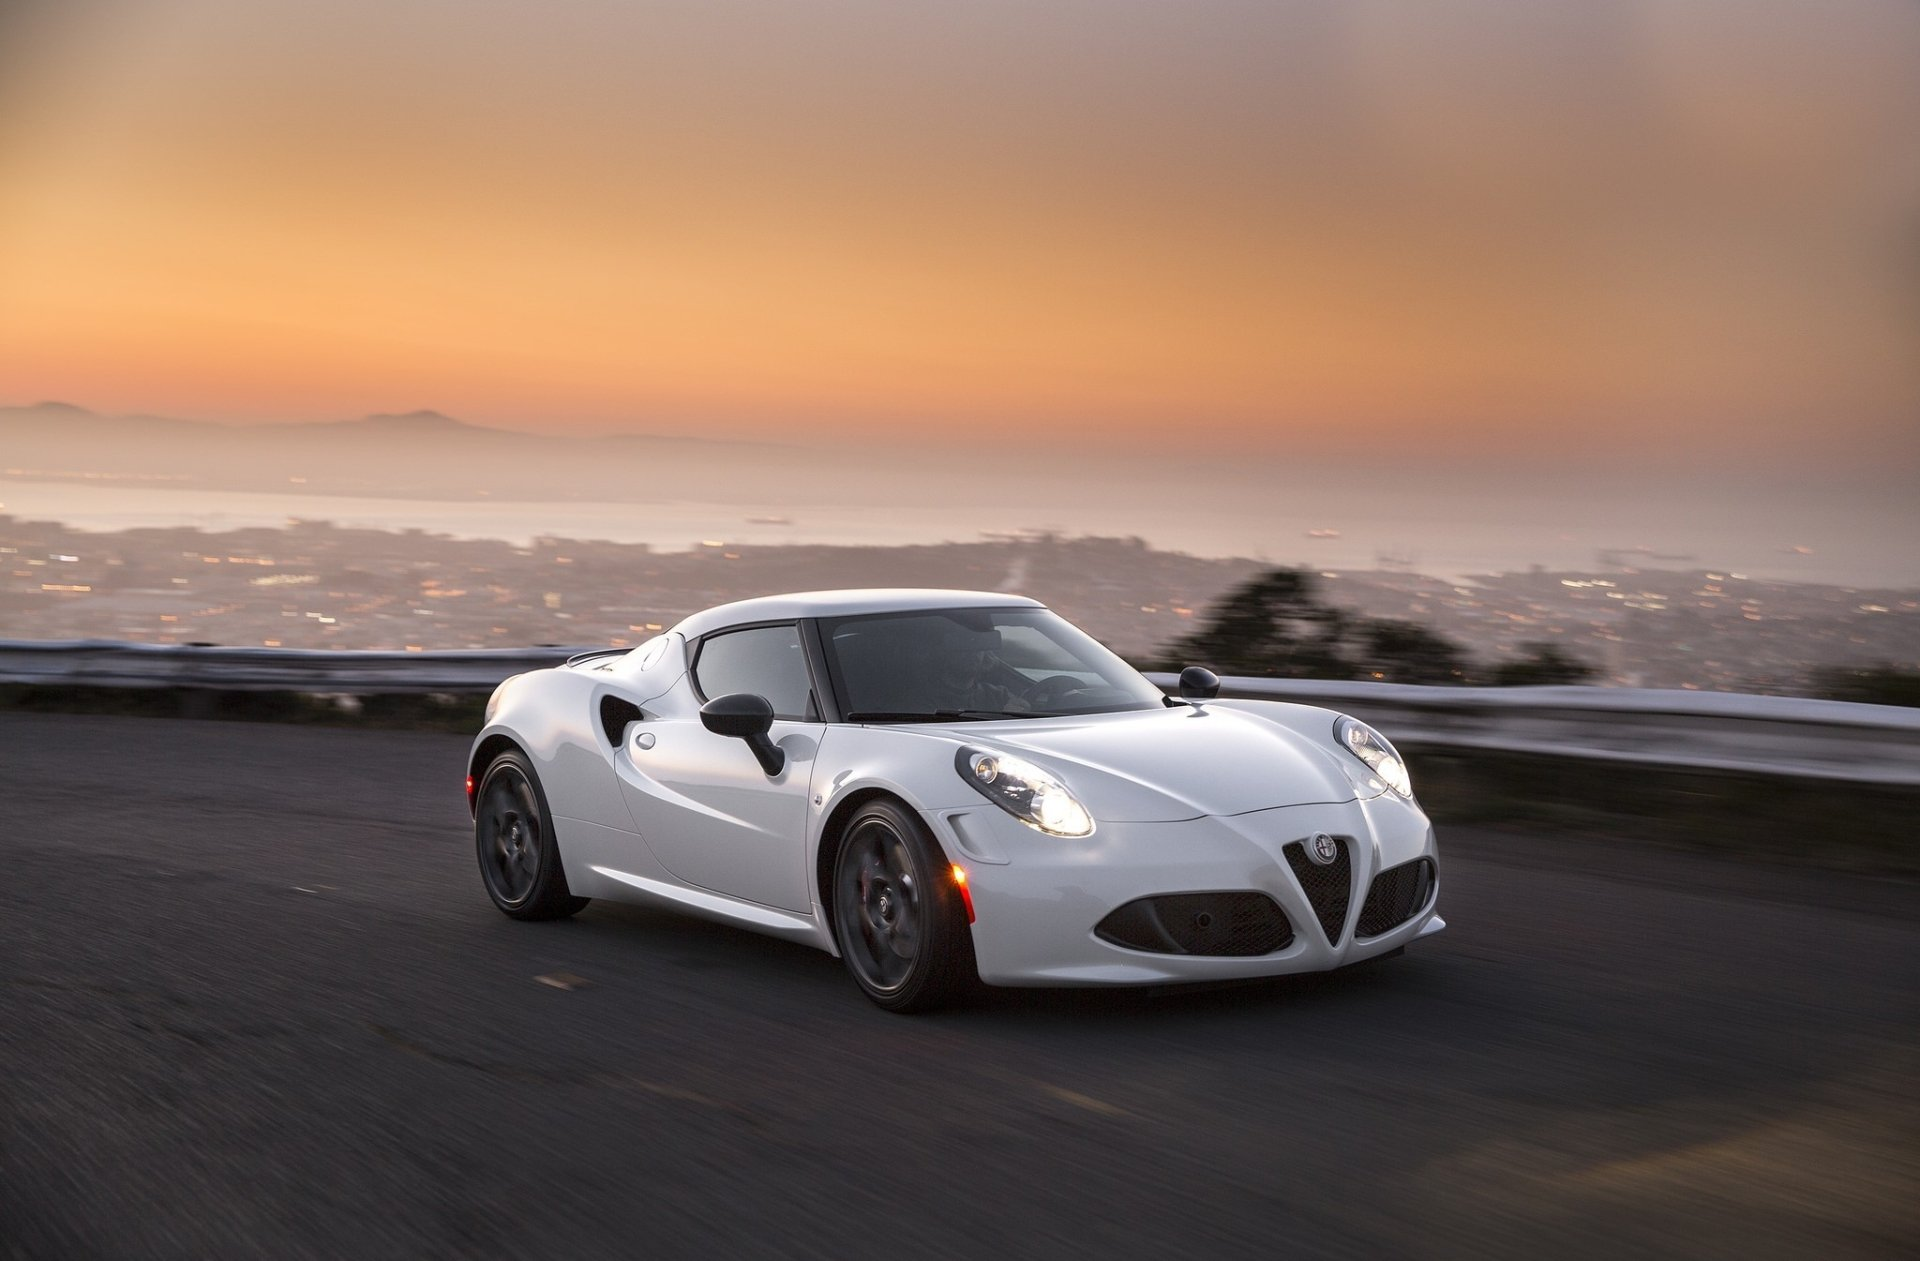 95 Alfa Romeo 4c Hd Wallpapers Background Images Wallpaper Abyss